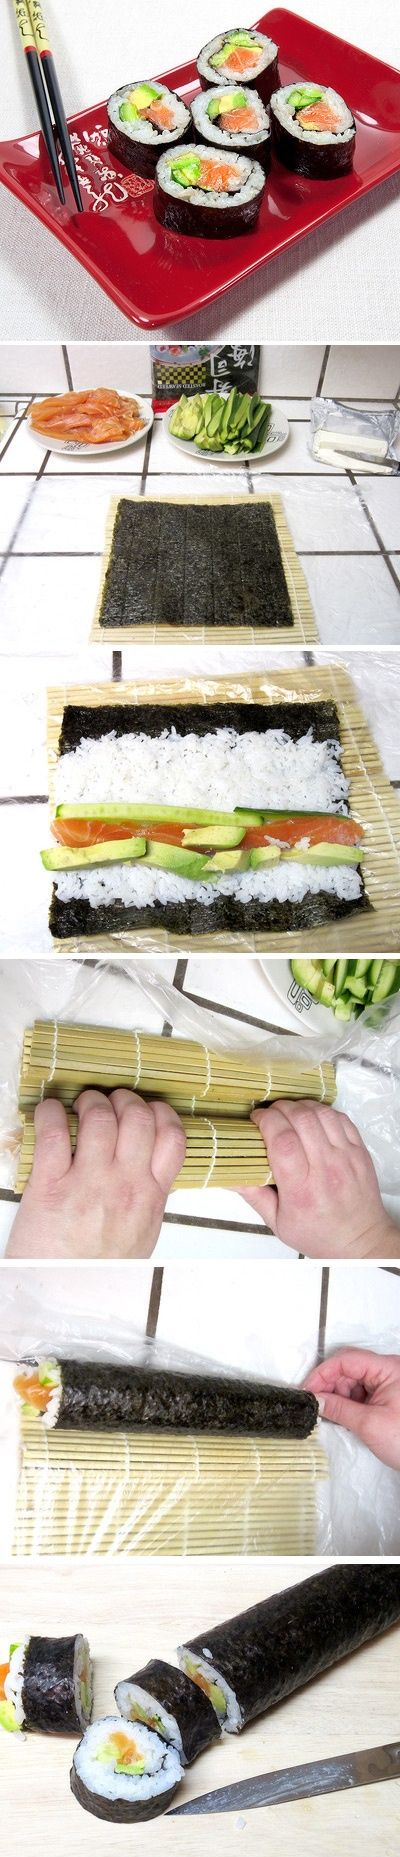 A step by step tutorial how to make sushi rolls at home. Click for recipe: | http://yummycupcakescollections.blogspot.com